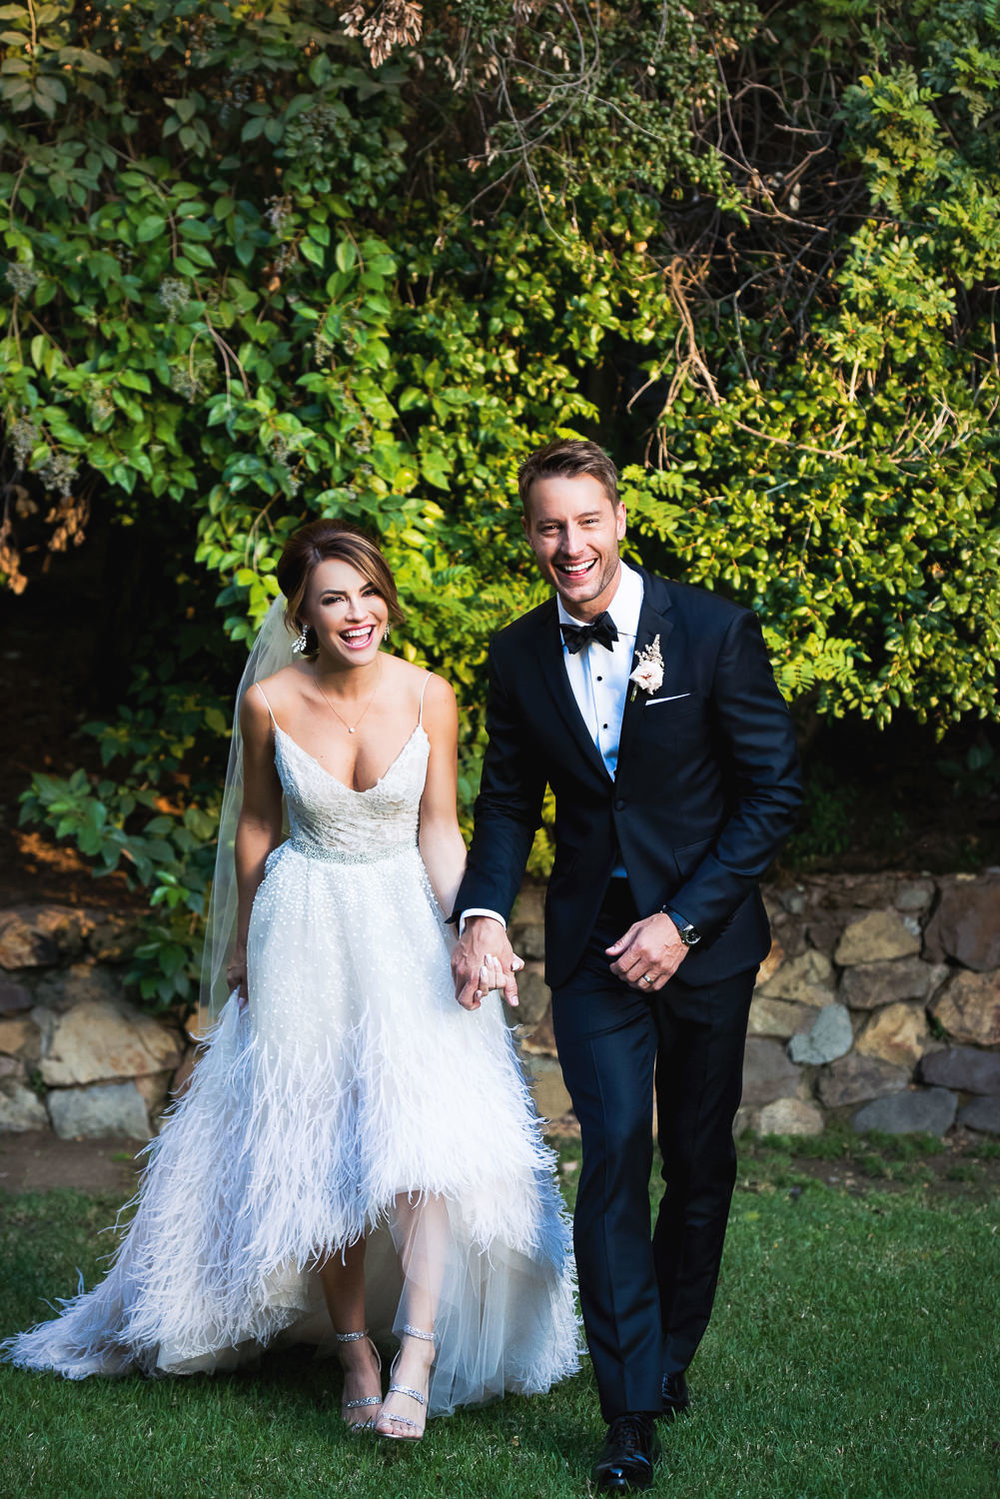 Justin Hartley Wedding in People Magazine at Calamigos Ranch - 4